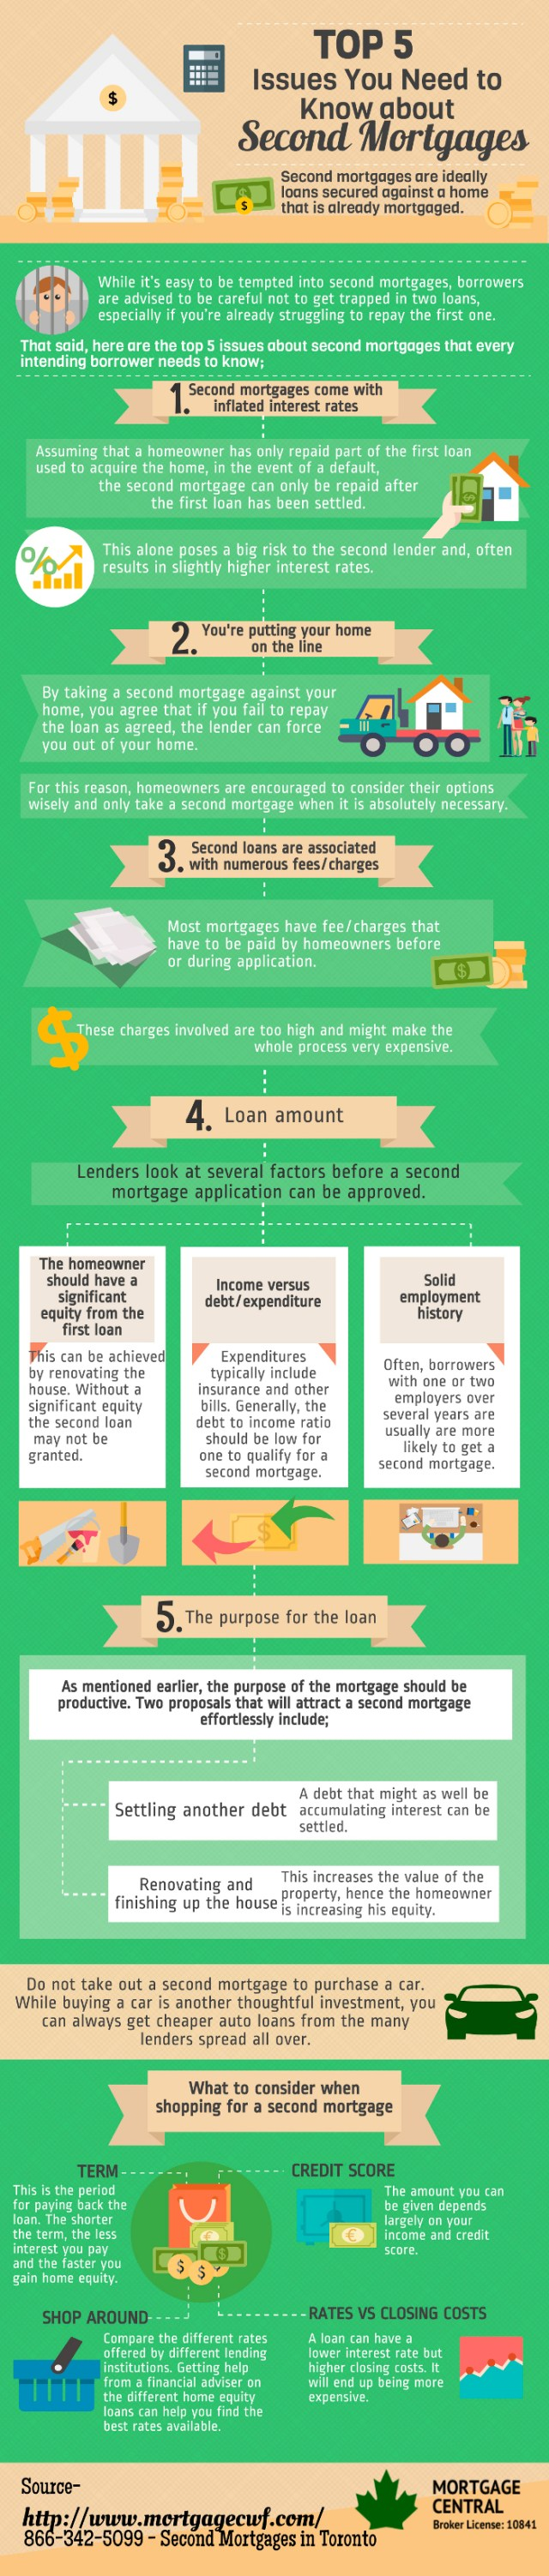 top-5-issues-you-need-to-know-about-second-mortgages_54e33a0cd4d5a